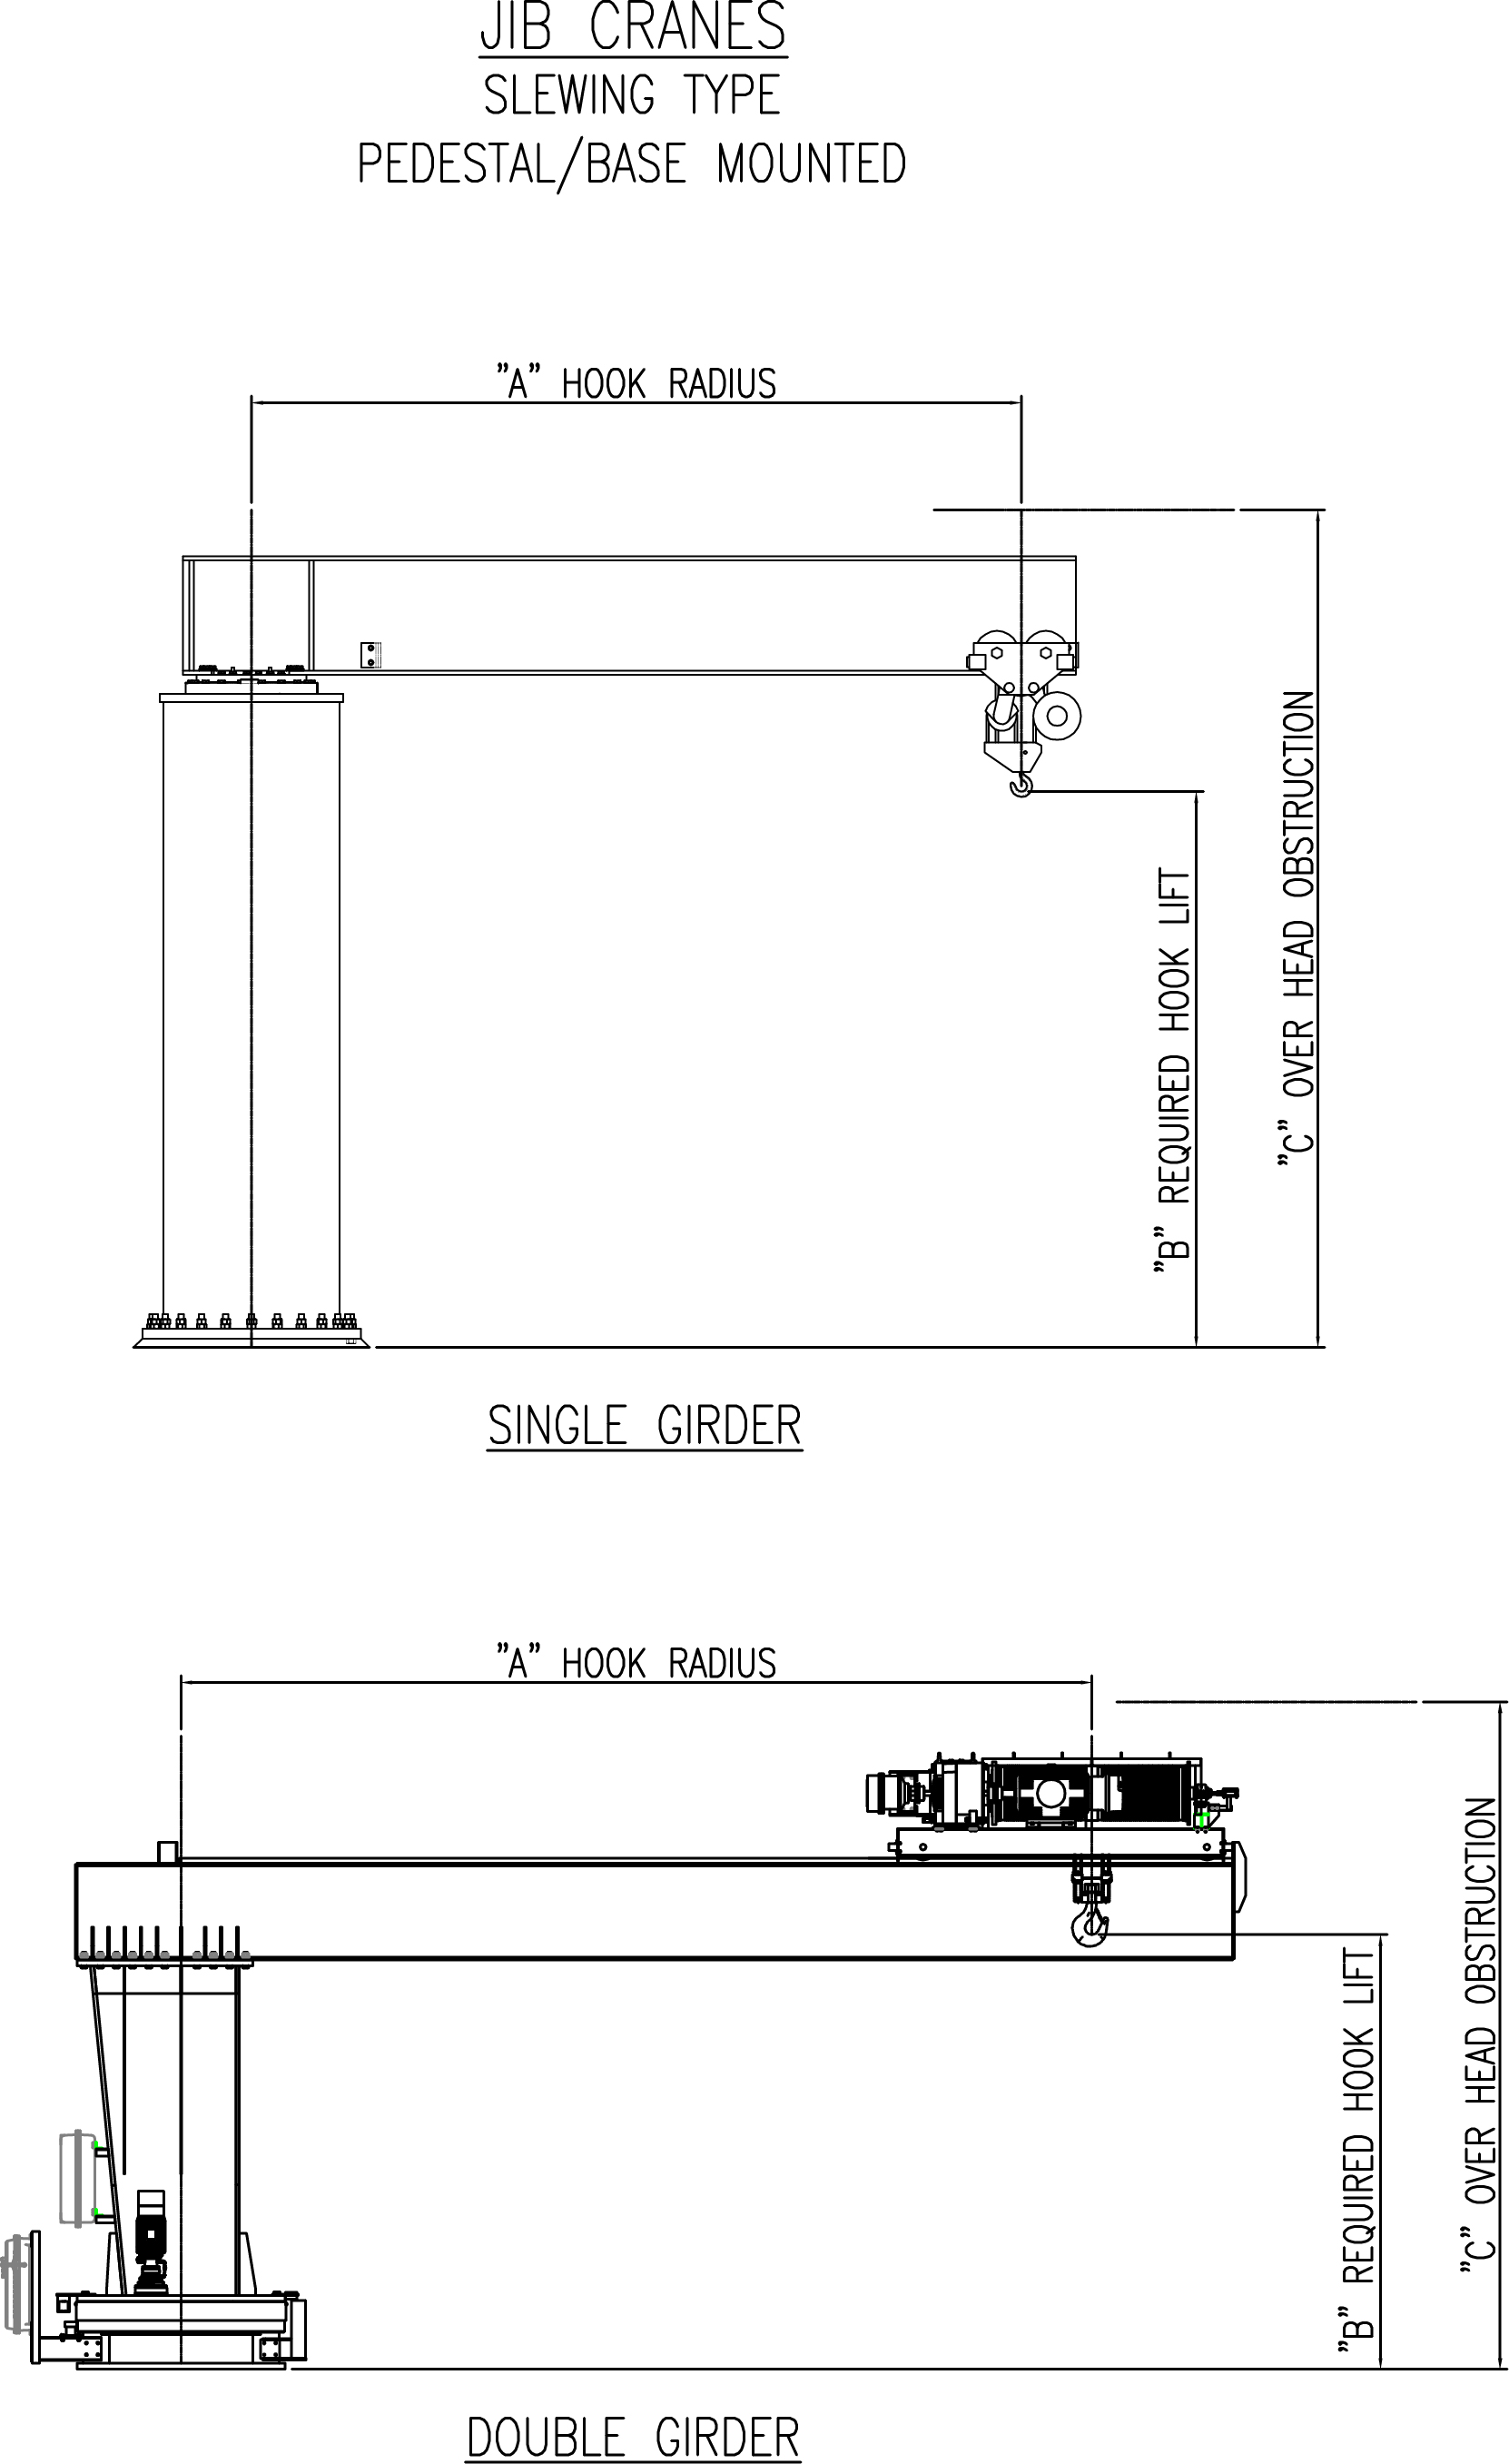 hight resolution of drawing aceco free standing insert mounted cad image jib crane sheet